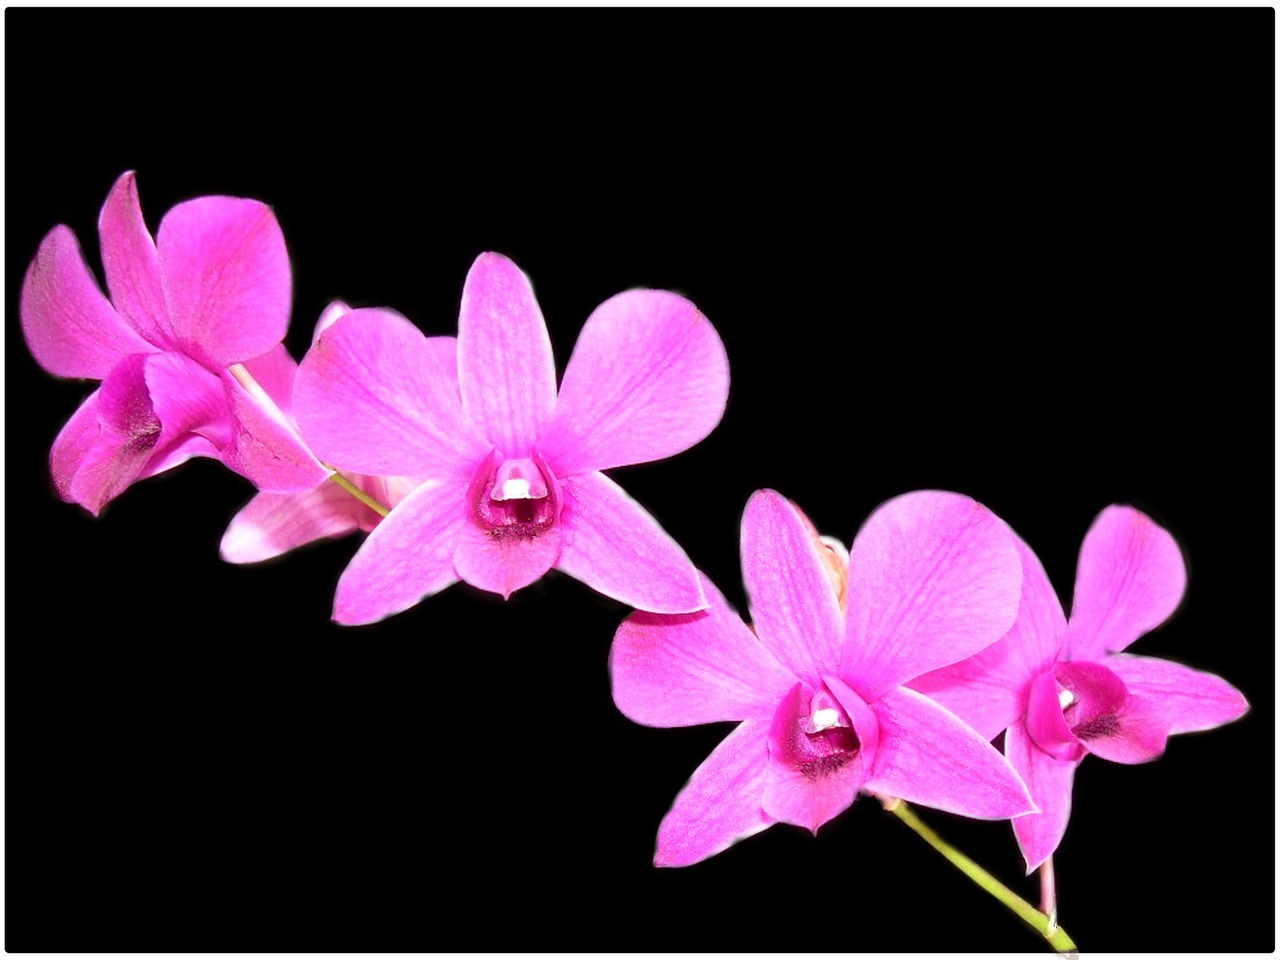 orchid,flower,violet,background,nature,floral,blossom,petal,spa,natural,tropical,flora,plant,bouquet,spring,healthy,fresh,branch,decorative,romantic,botany,purity,vibrant,elegance,stem,relaxation,exotic,aromatic,vivid,luxurious,oriental,asian,free pictures, free photos, free images, royalty free, free illustrations, public domain